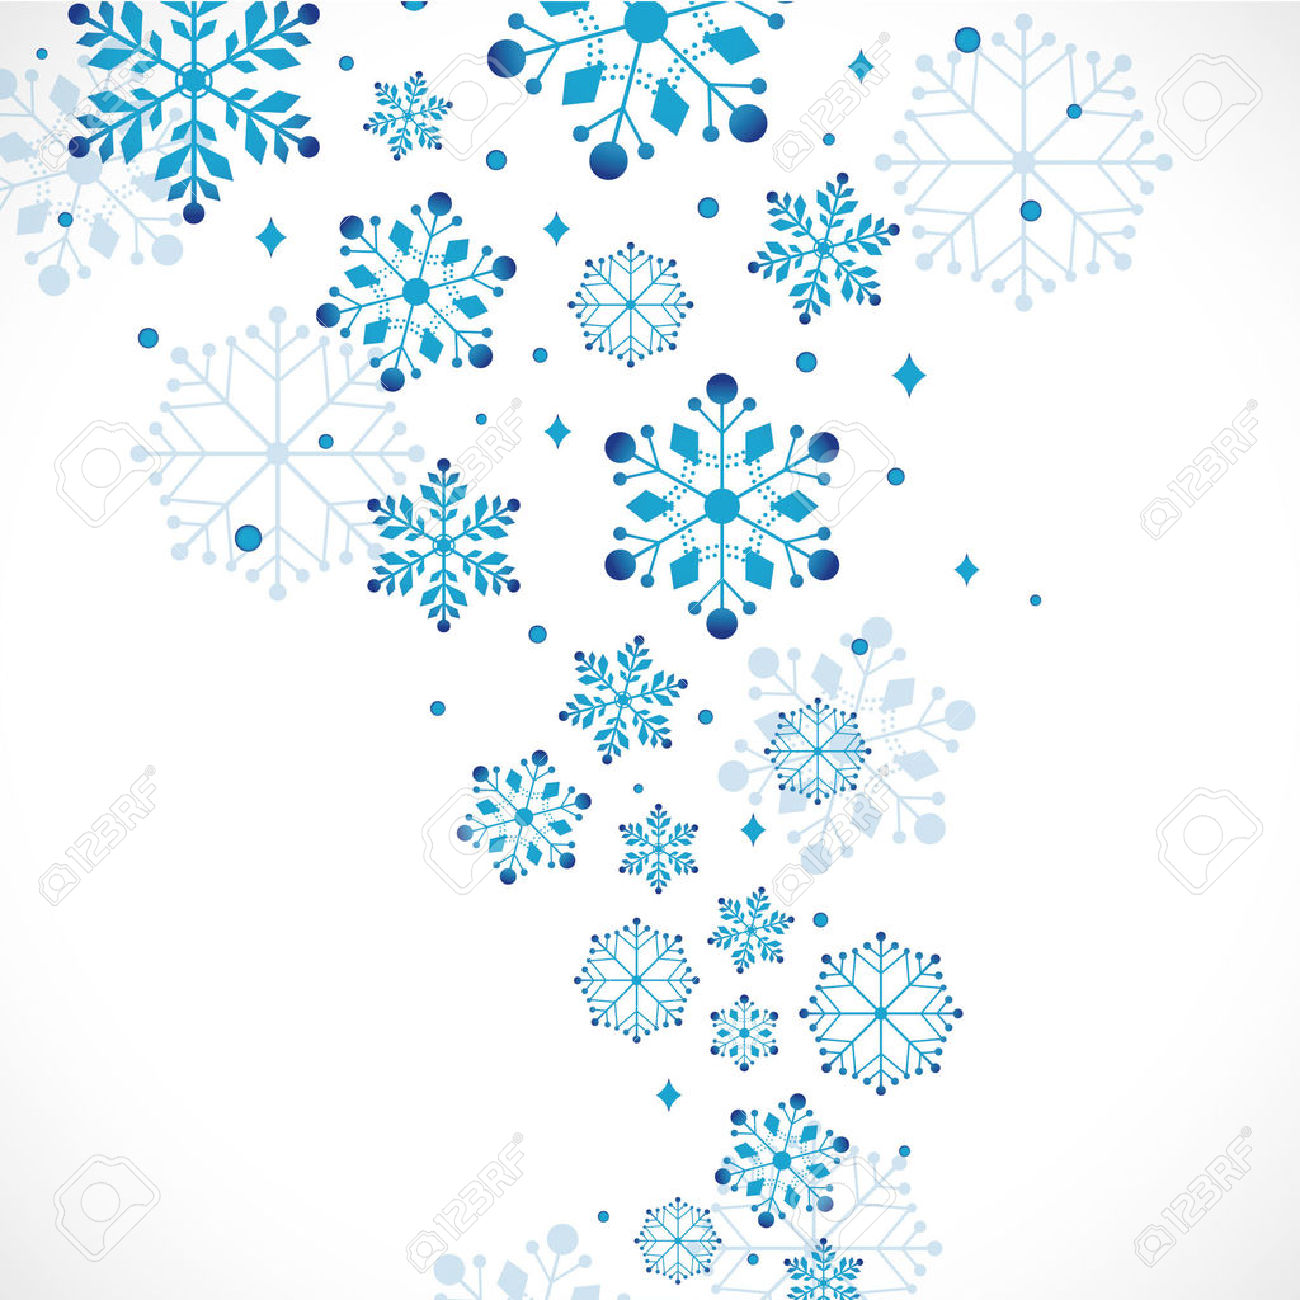 Free Snow Clipart, Download Snow Winter HD Images - Free Transparent PNG  Logos